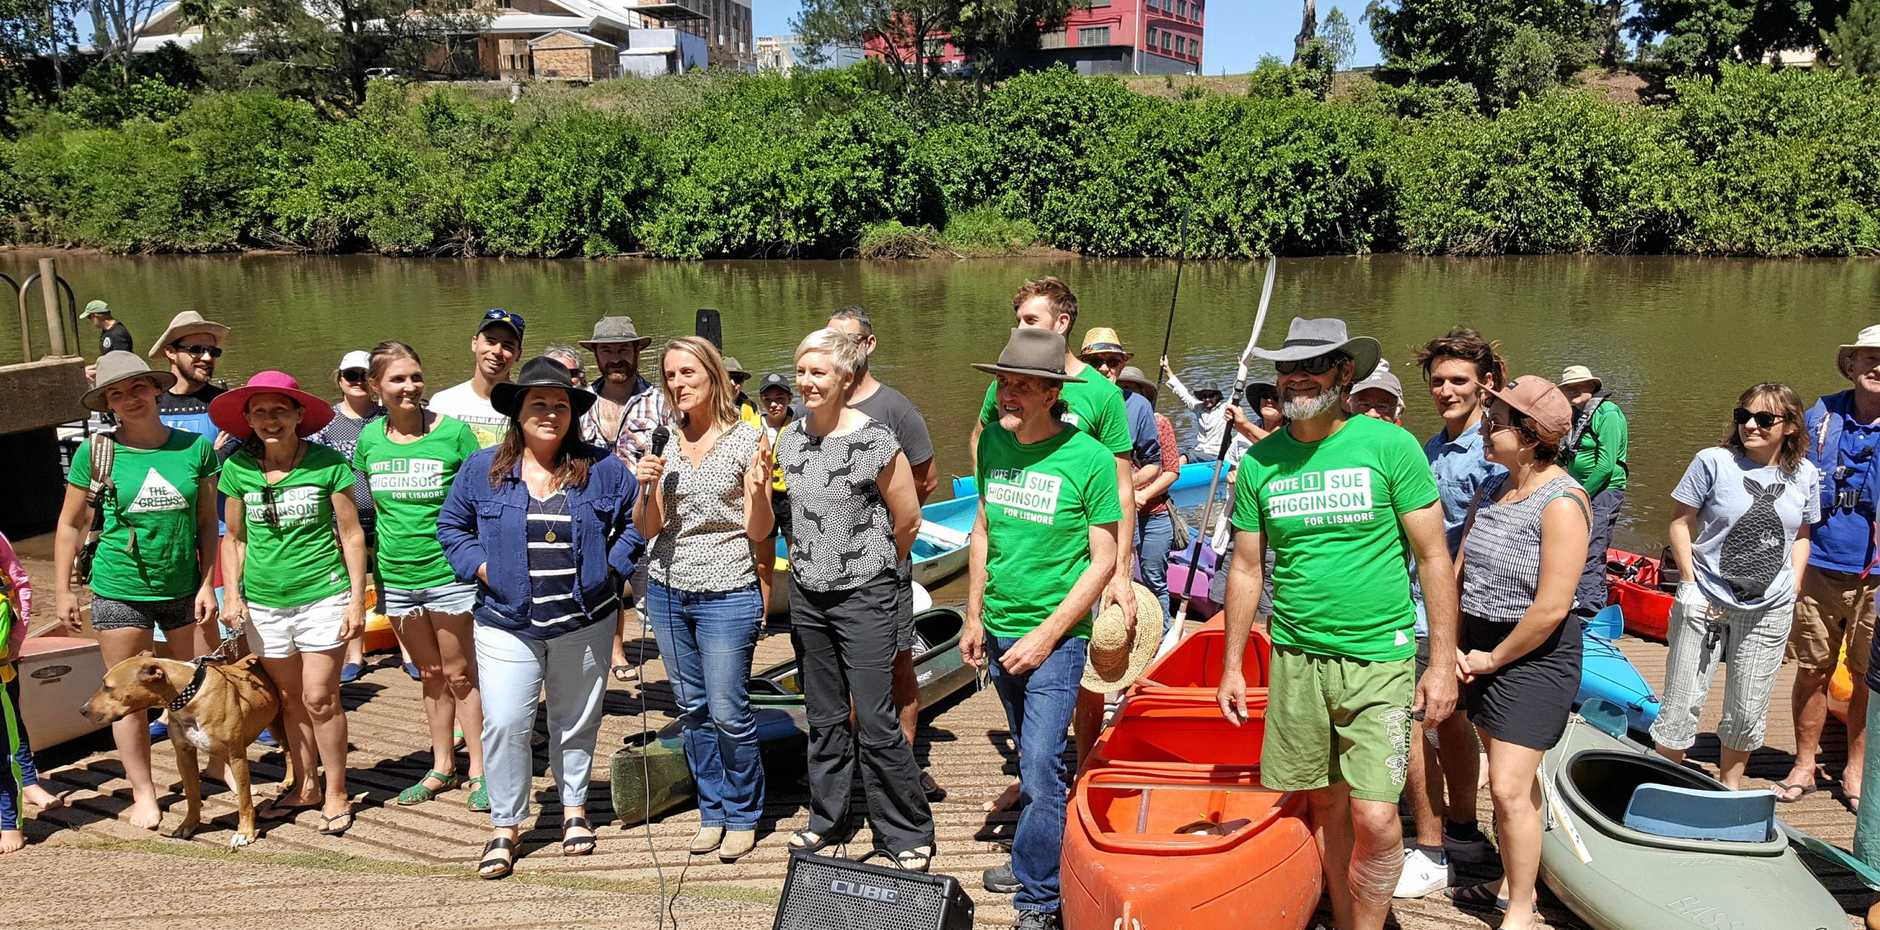 GREEN SWELL: The comprehensive plan to restore the Richmond River could make river swimming in Lismore possible again, as well as many other economic and ecological benefits, The Greens argue.